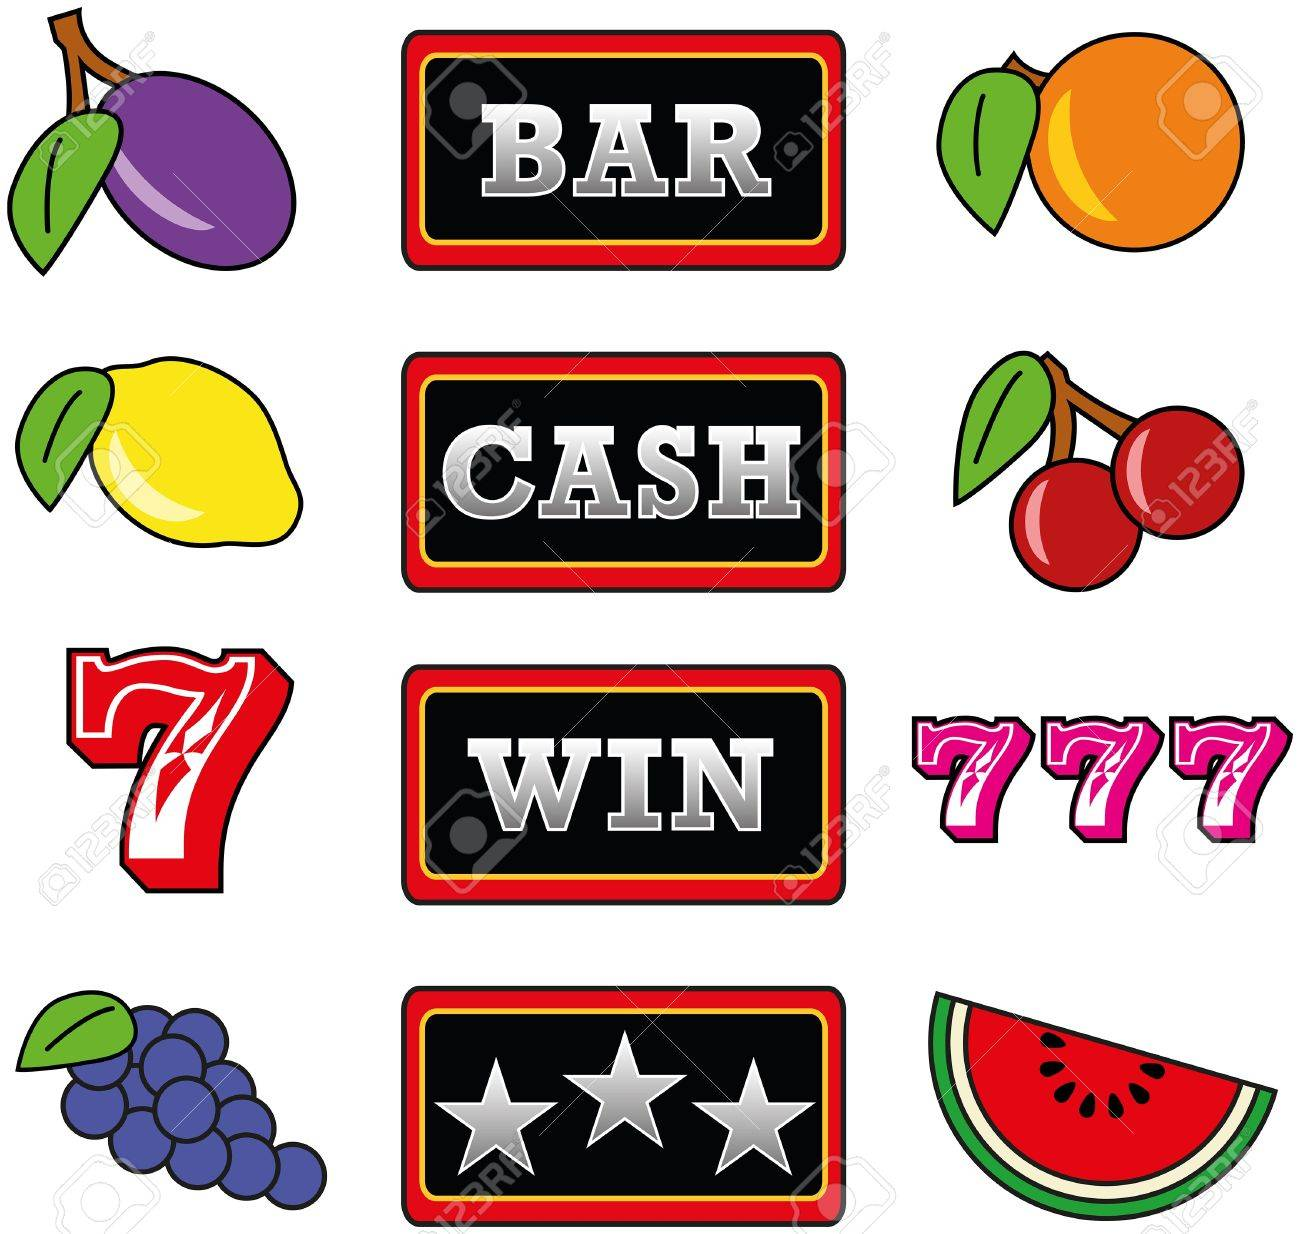 Slot machine symbol guide to football gambling